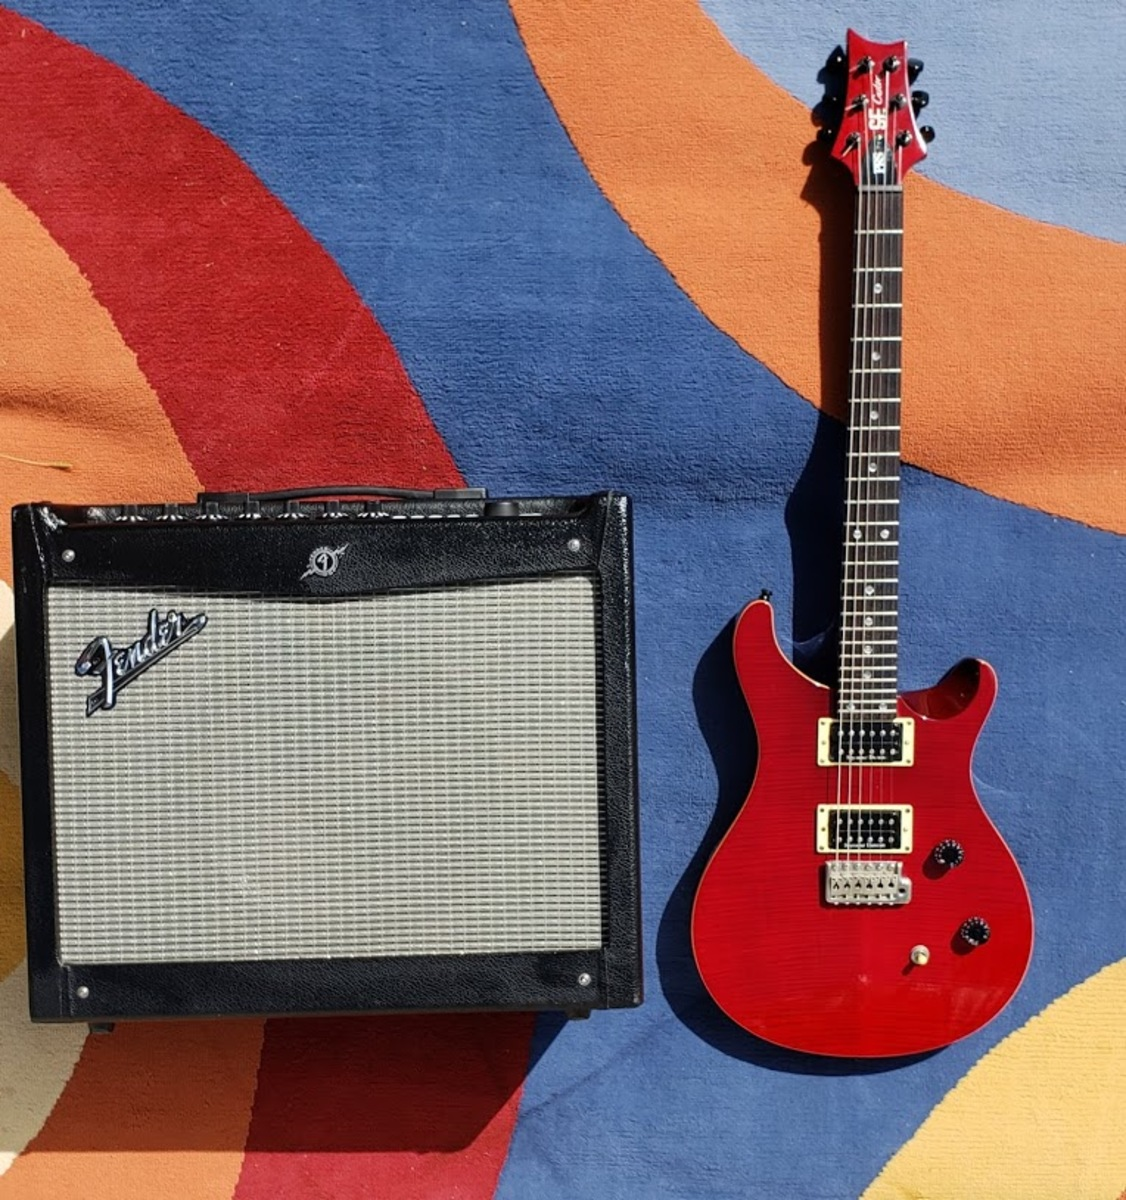 jwettel's guitar and amplifier photo containing Fender Mustang 3 Amp and PRS Paul Reed Smith SE Custom 24